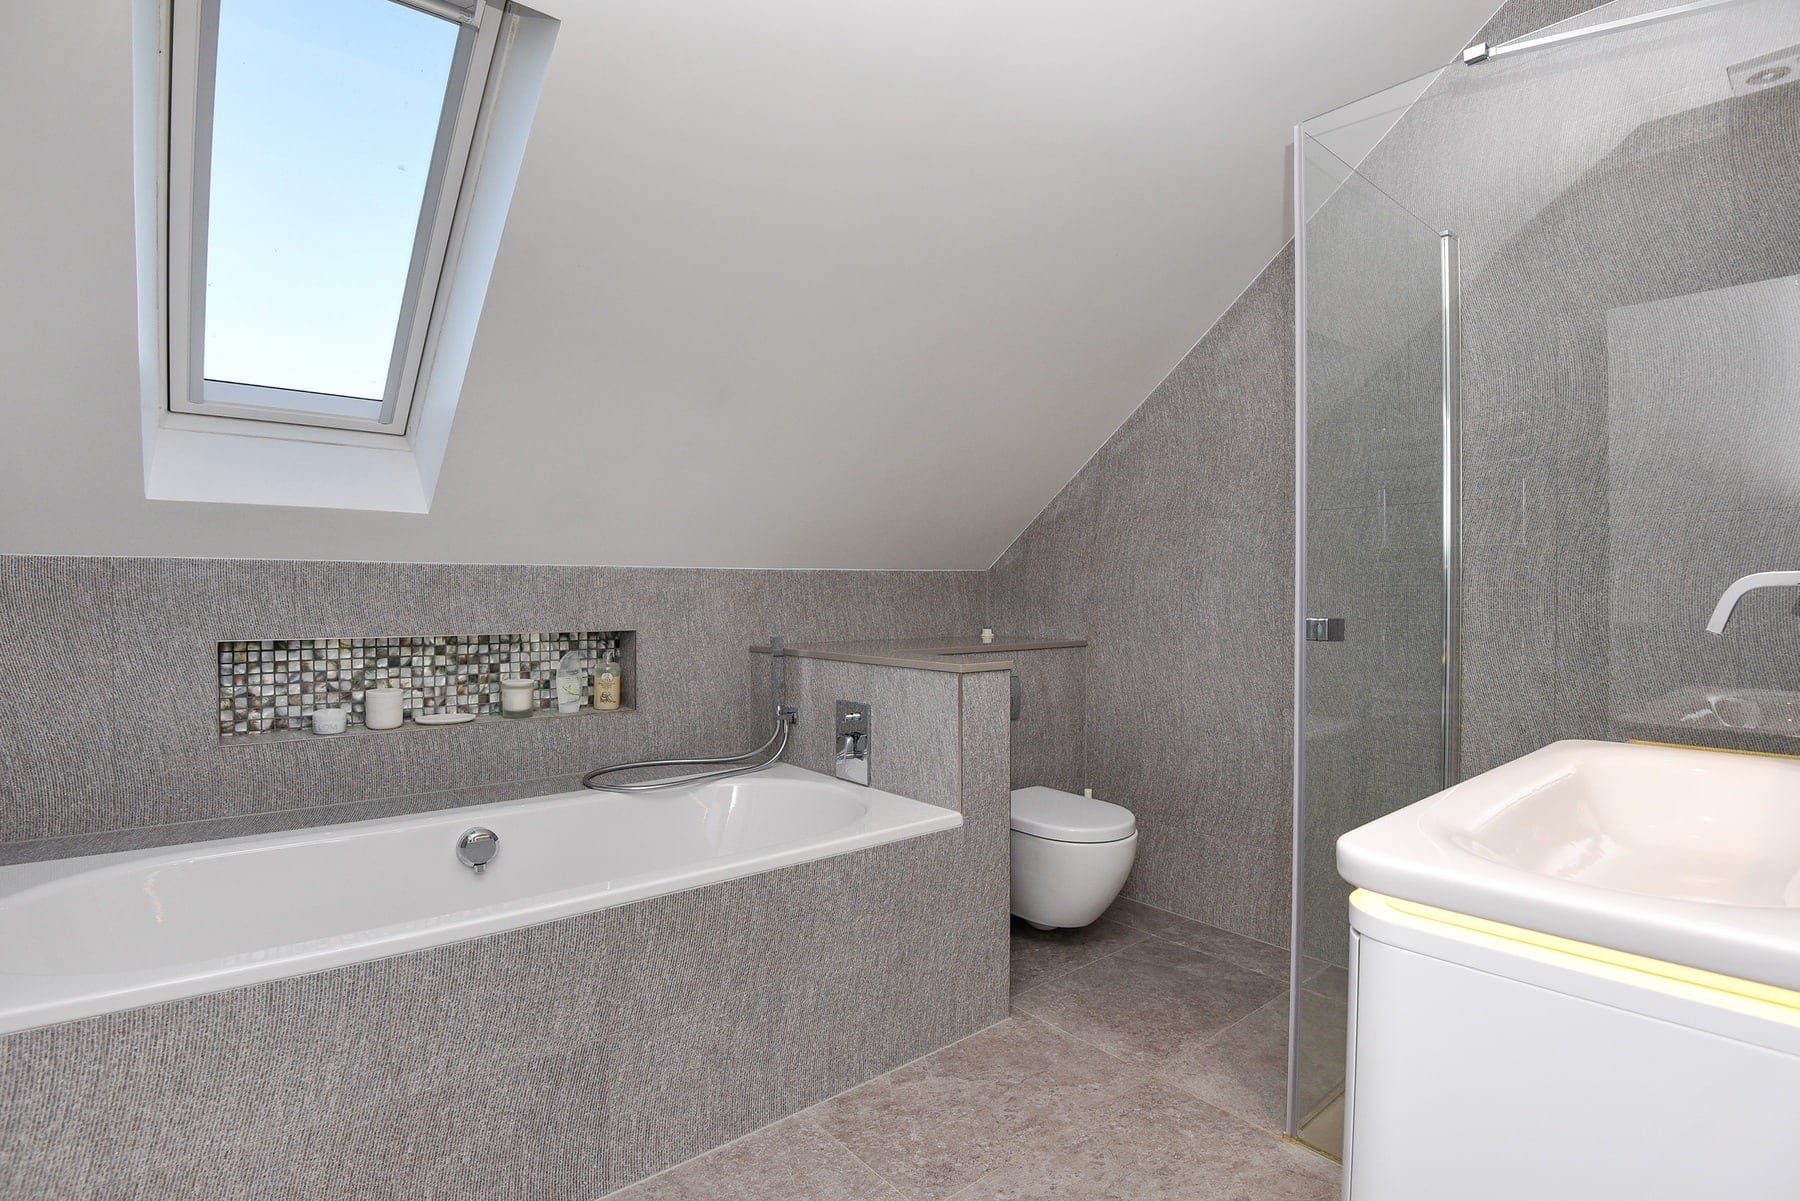 Totteridge Bathroom 7 | Such Designs, London